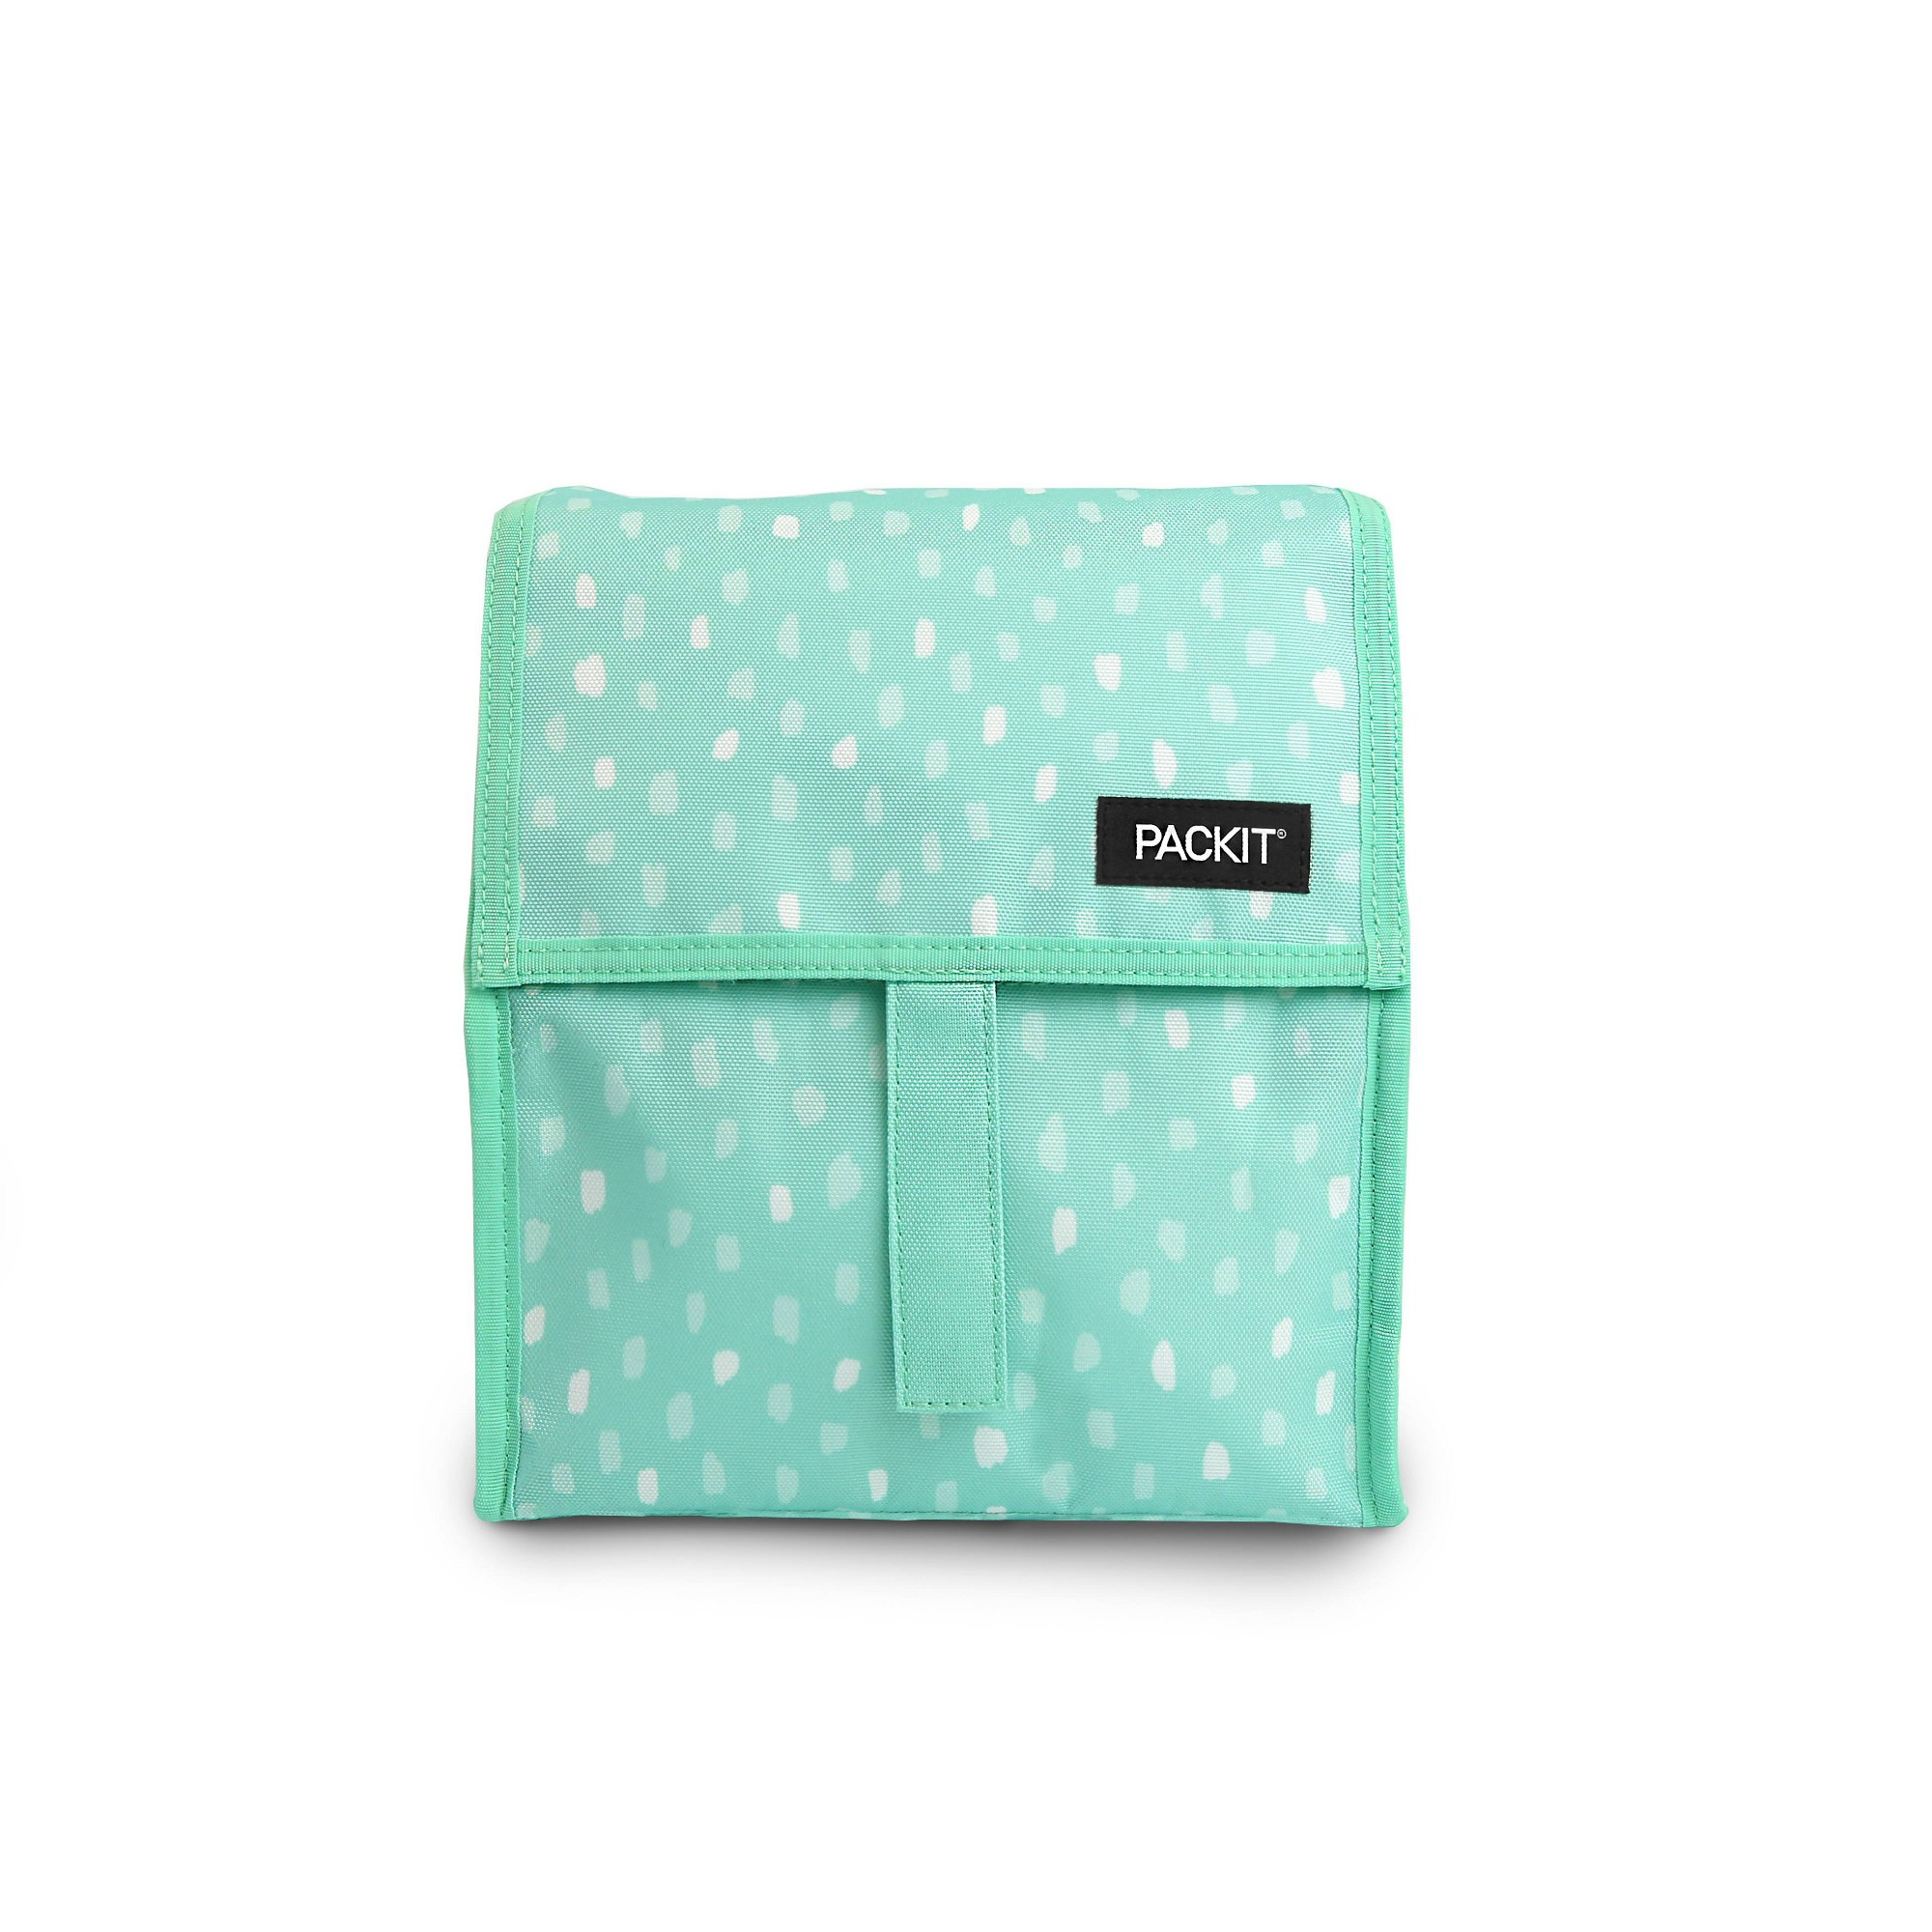 PackIt Lunch Bag - Mint Spritz, Blue | Products in 2019